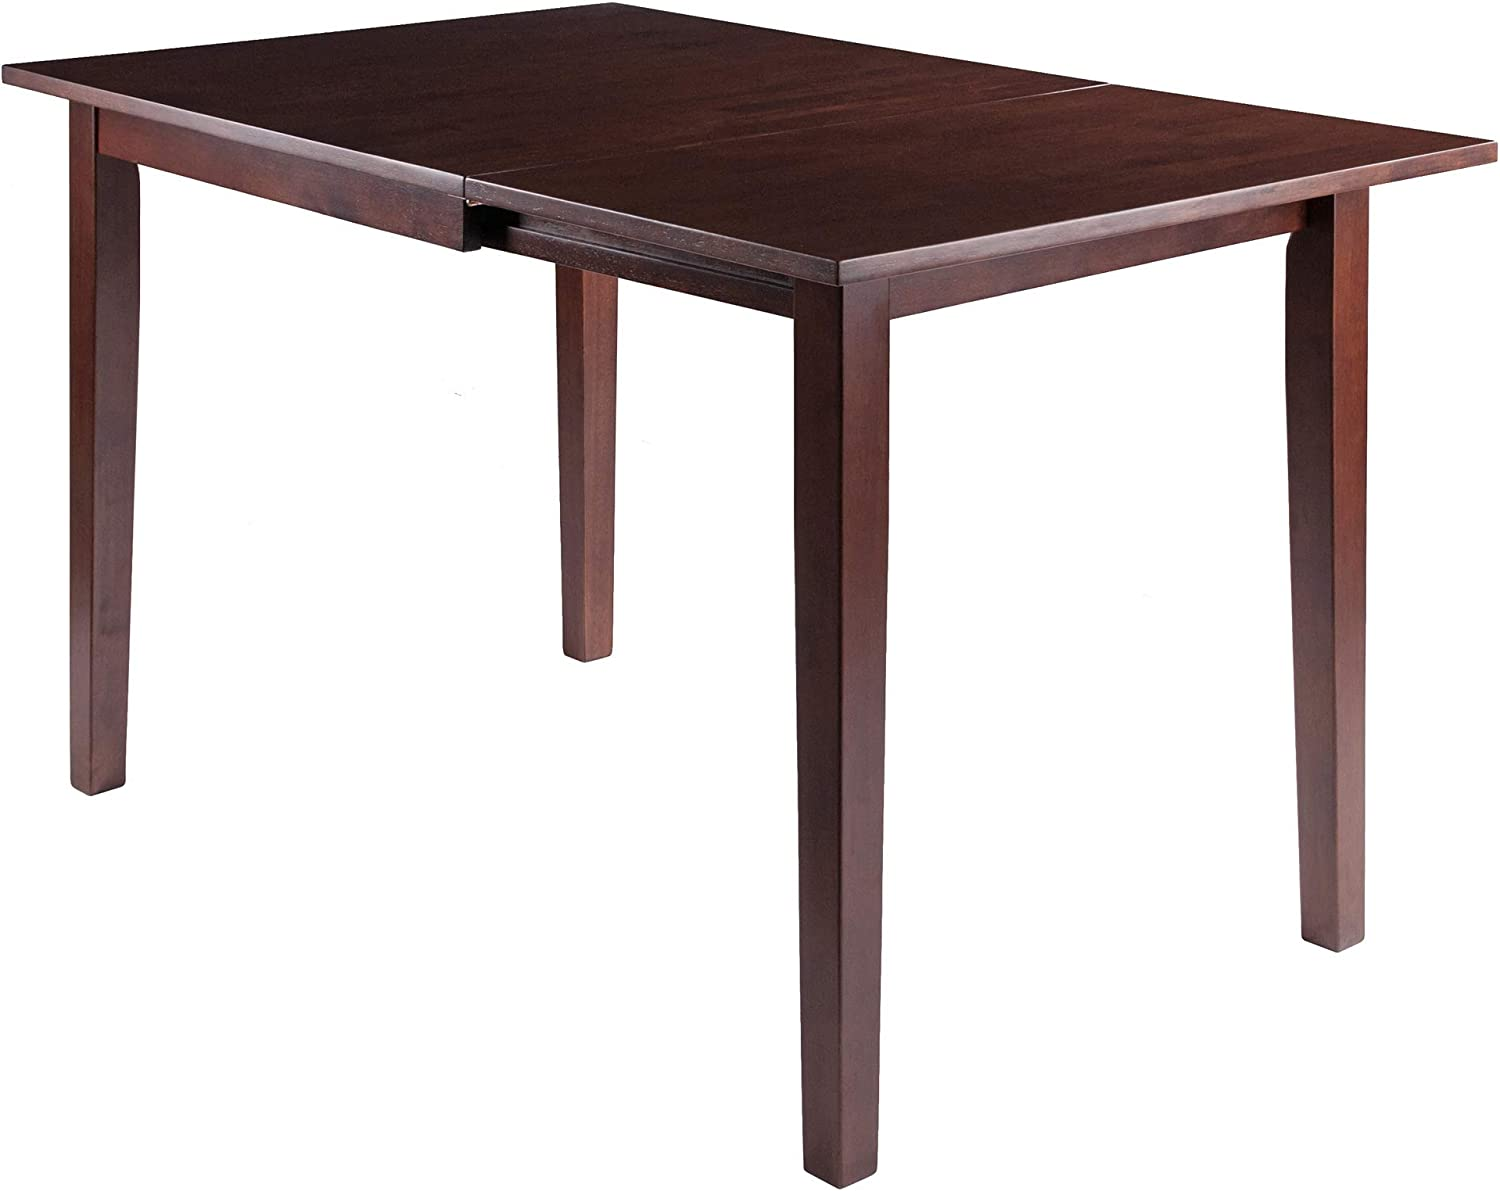 Winsome Perrone Dining Table, Walnut